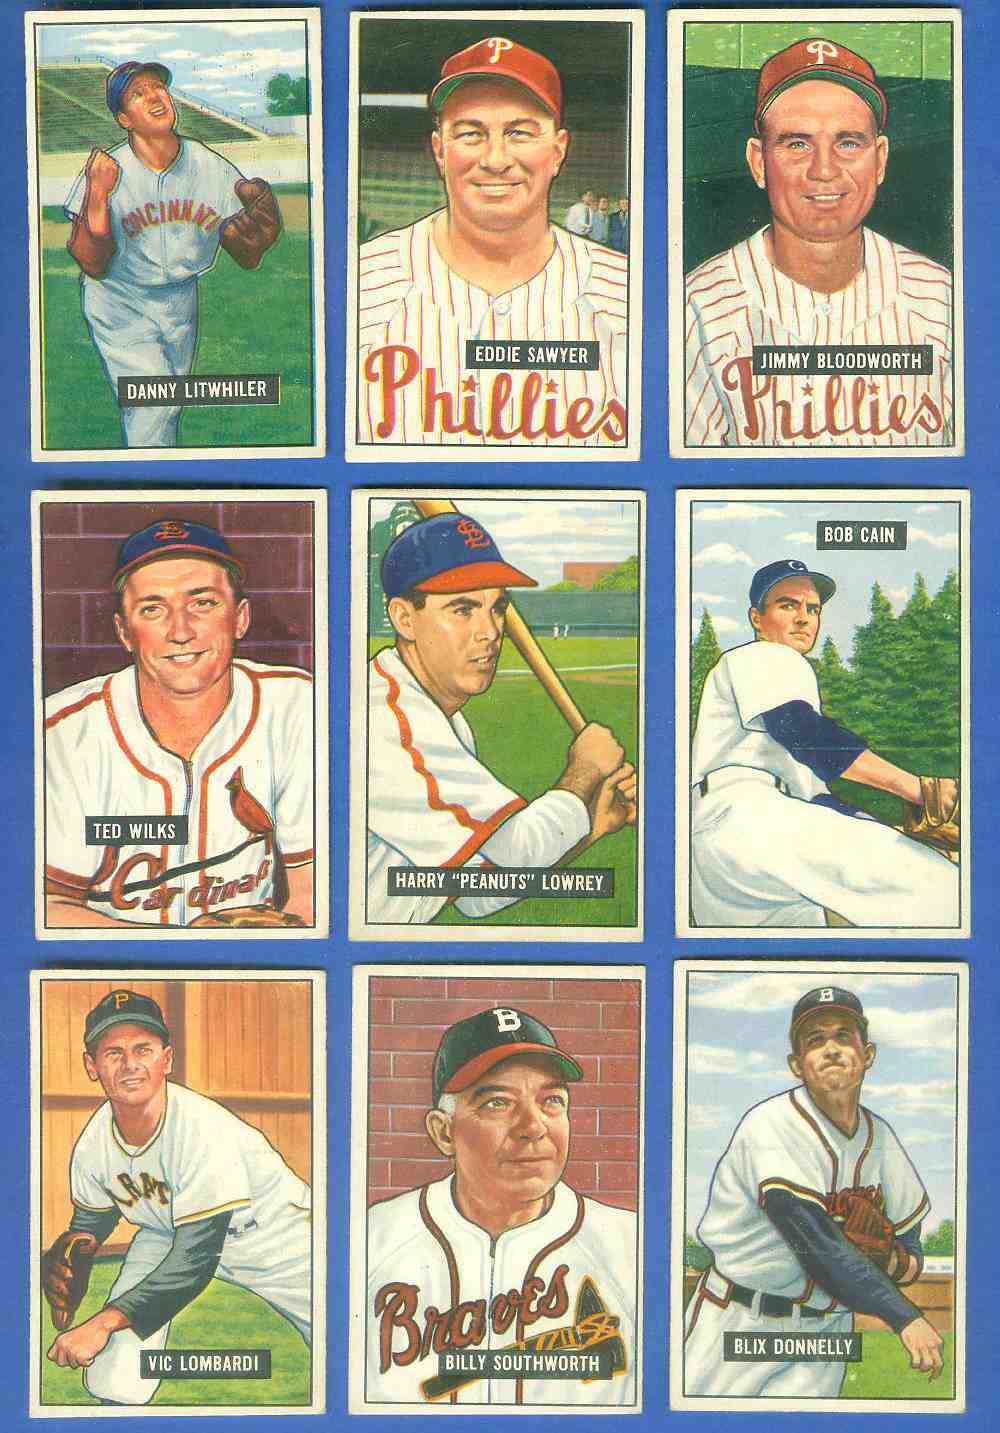 1951 Bowman #208 Blix Donnelly [#x] (Boston Braves) Baseball cards value